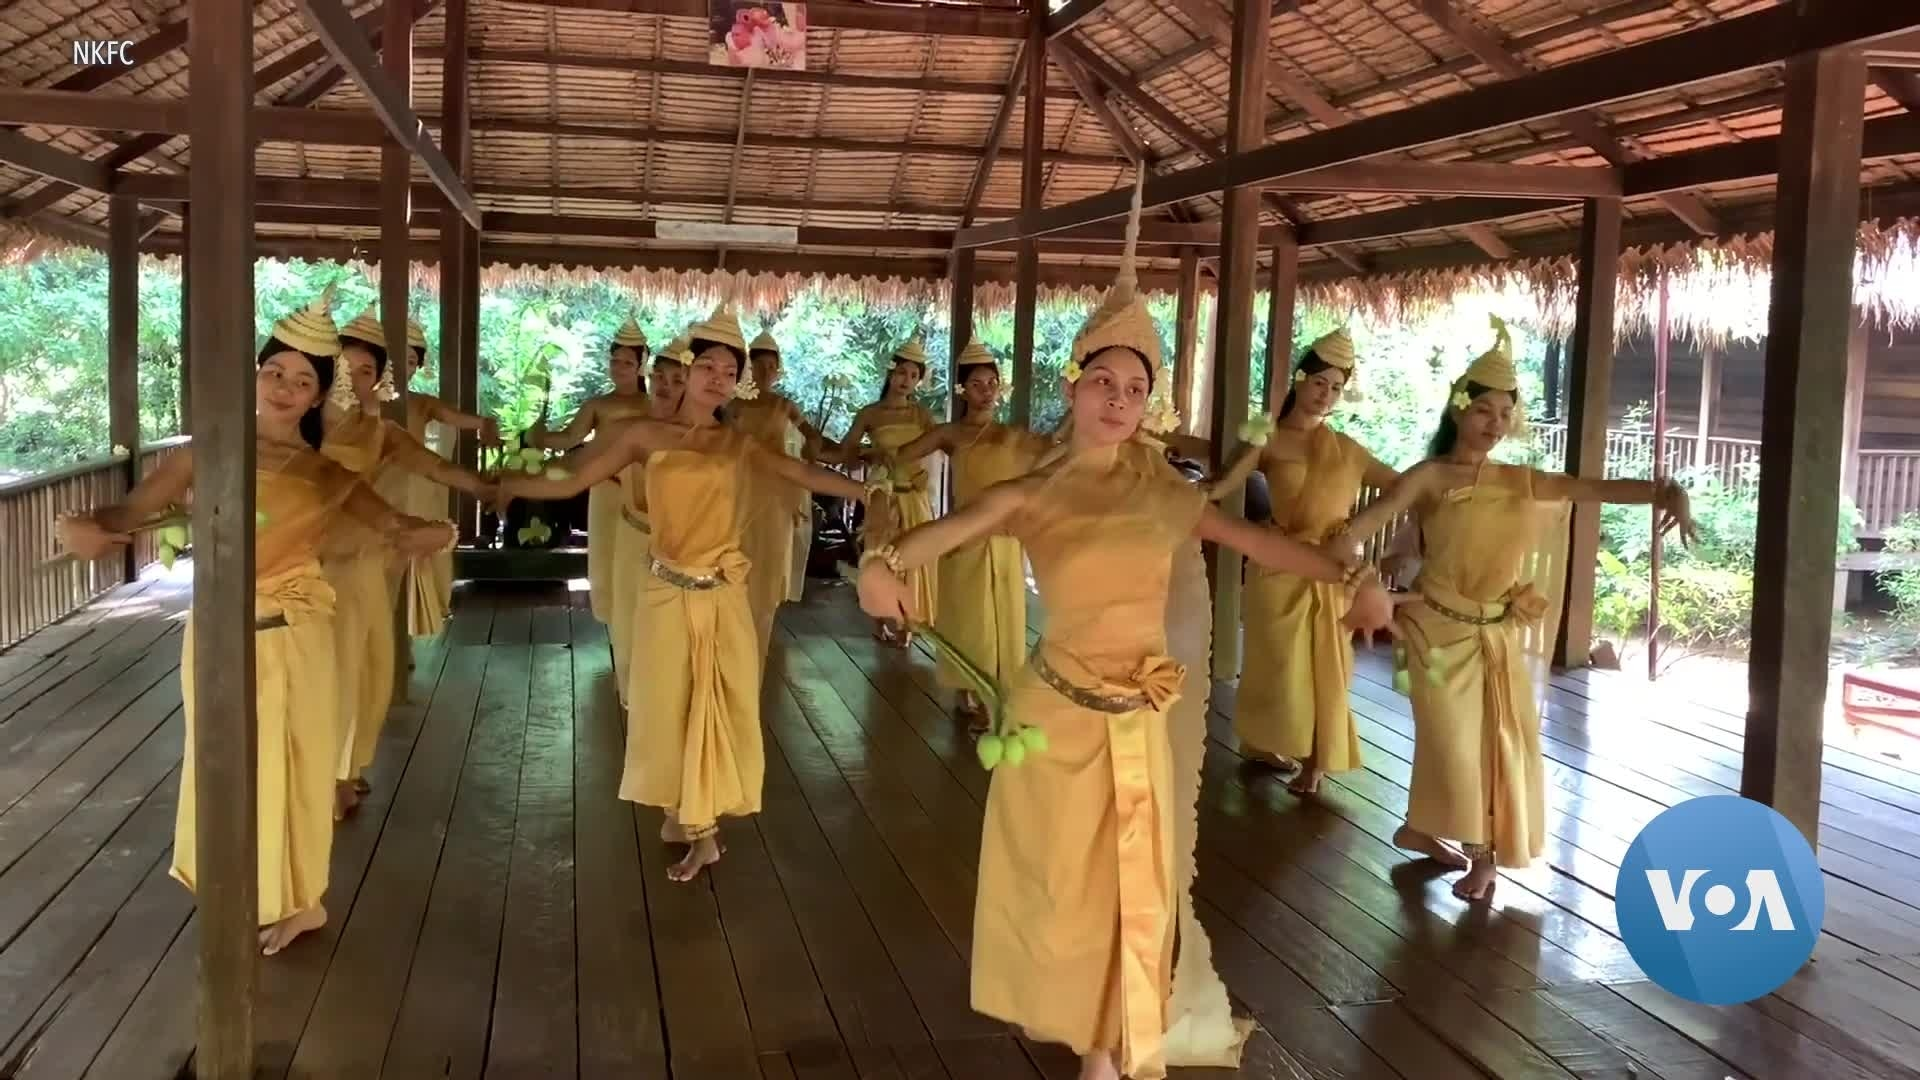 Image COVID-19 Threatens Cambodian Dance Troupe's Sacred Identity